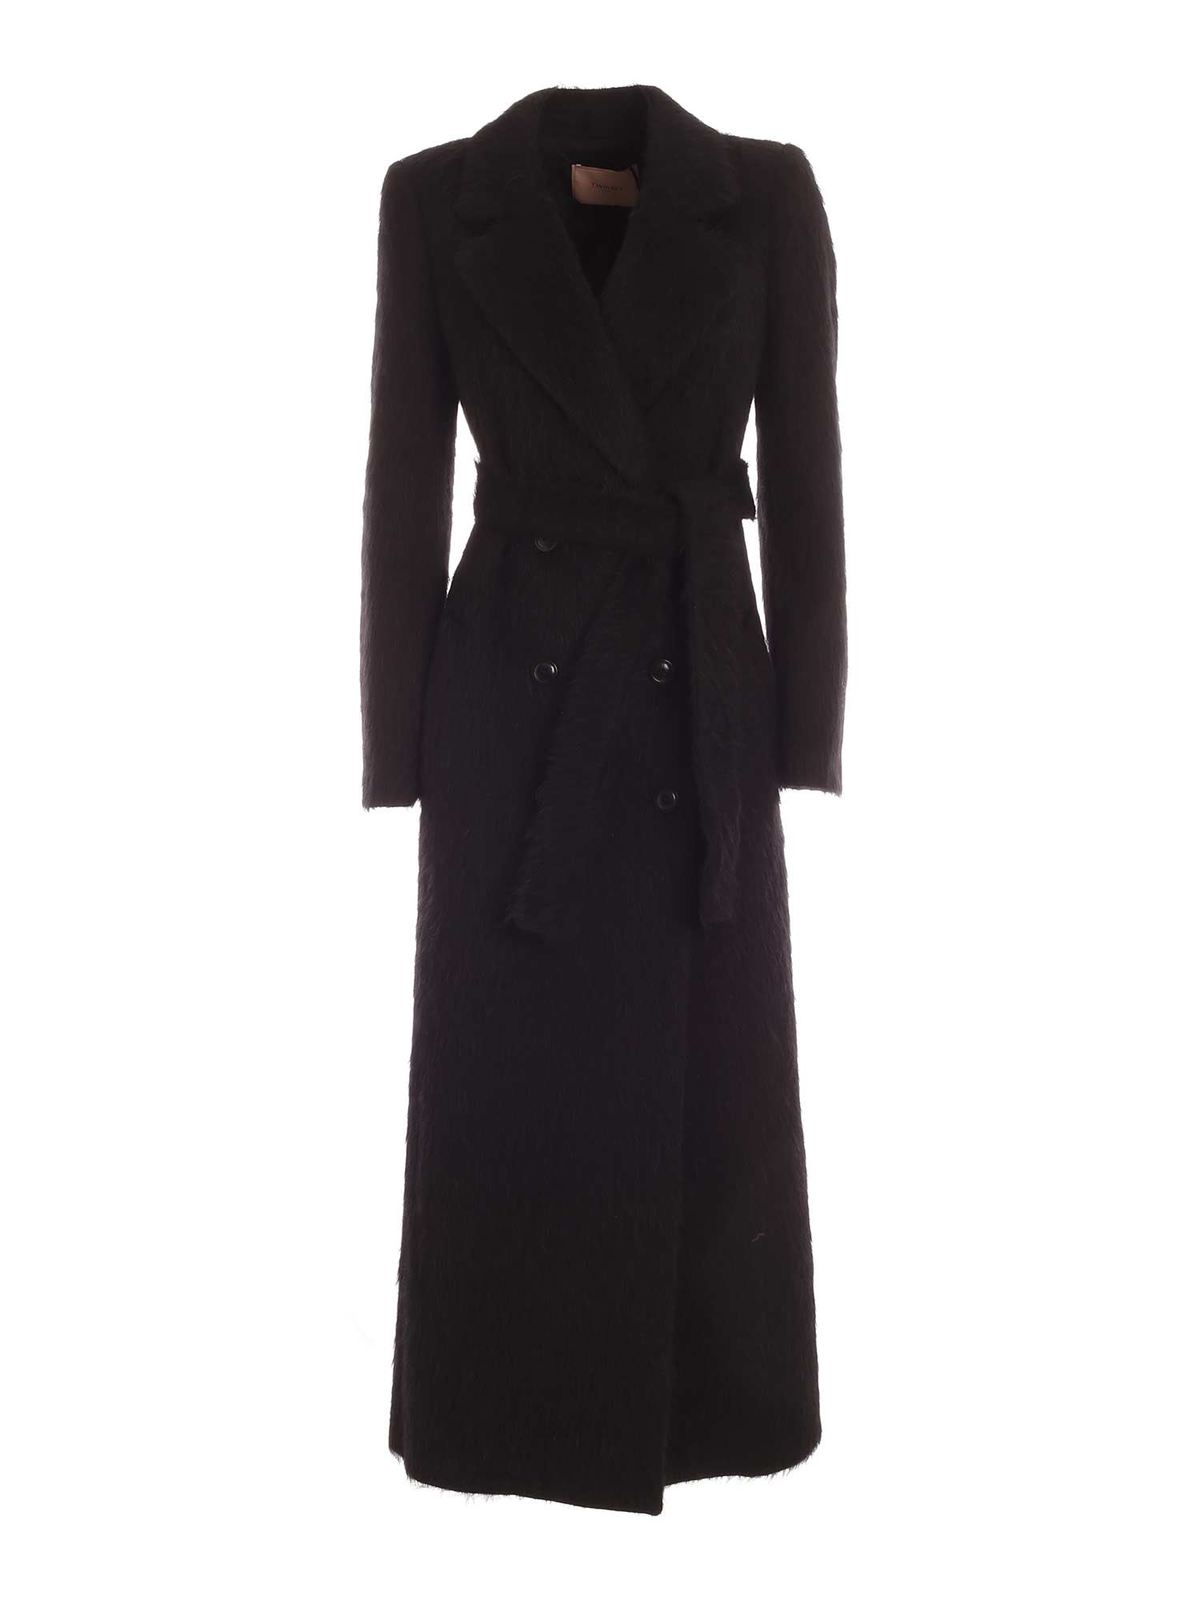 Twinset BELT DOUBLE-BREASTED COAT IN BLACK